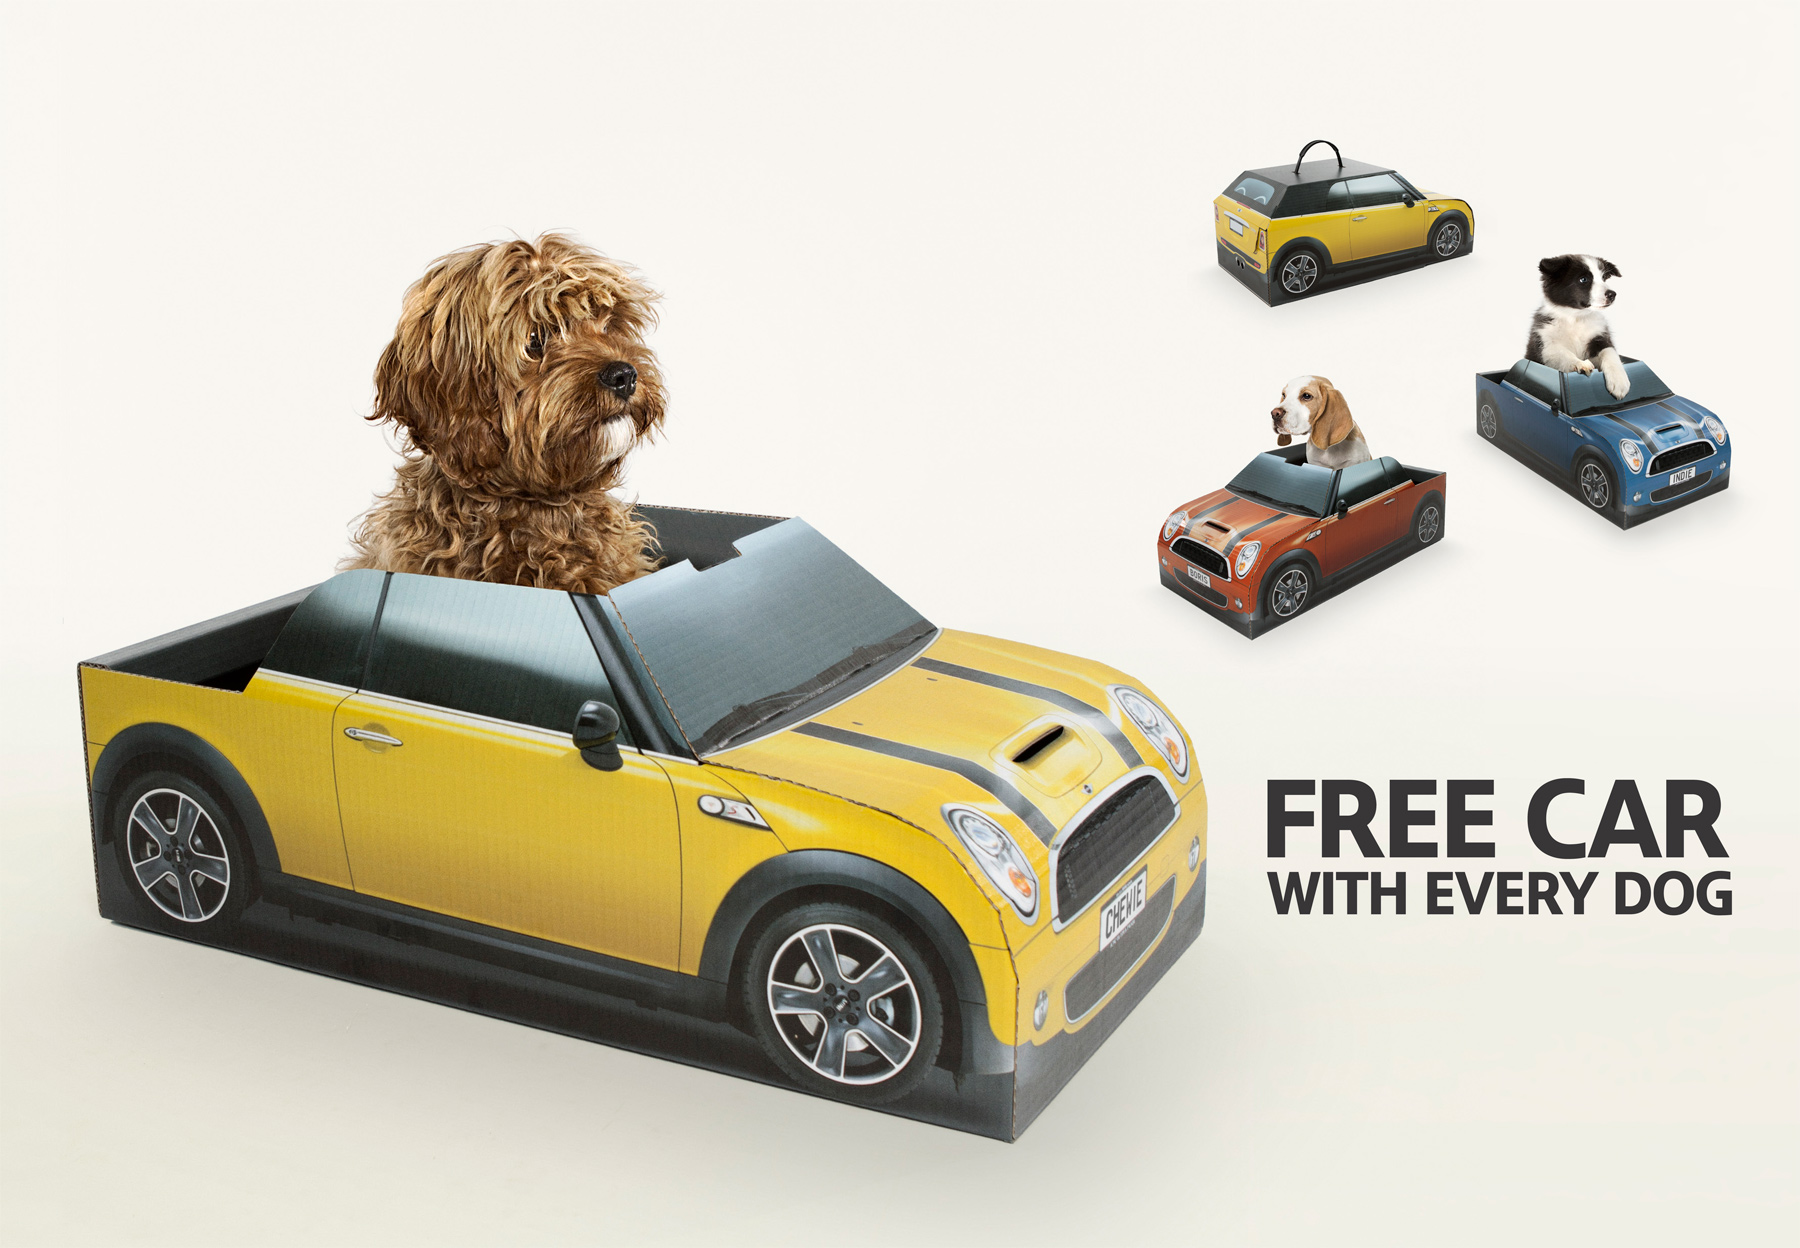 Mini Gives Newly Adopted Puppies Free Topless Car As Dog